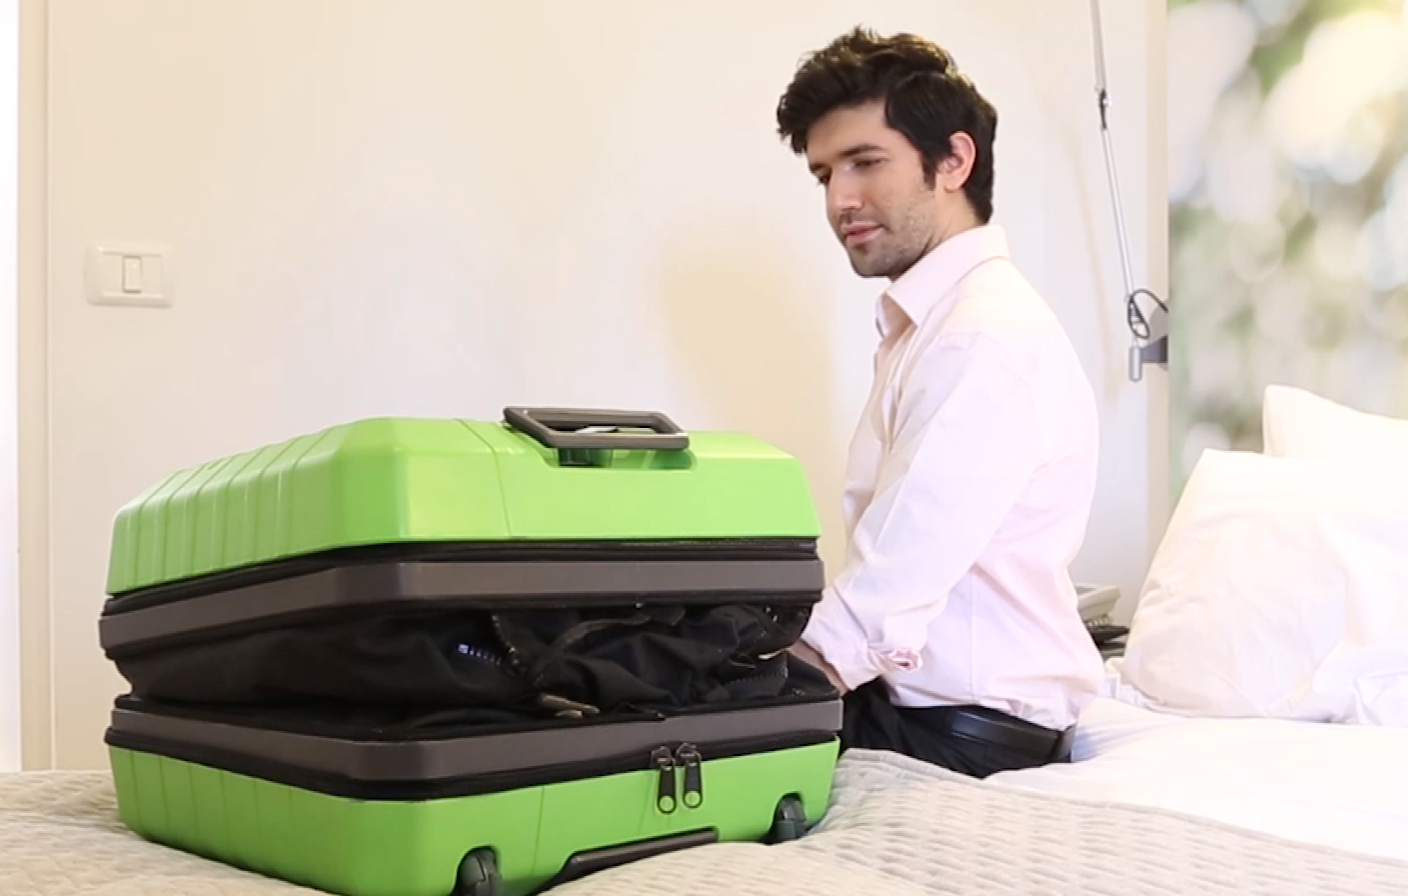 fugu_luggage_suitcase_home